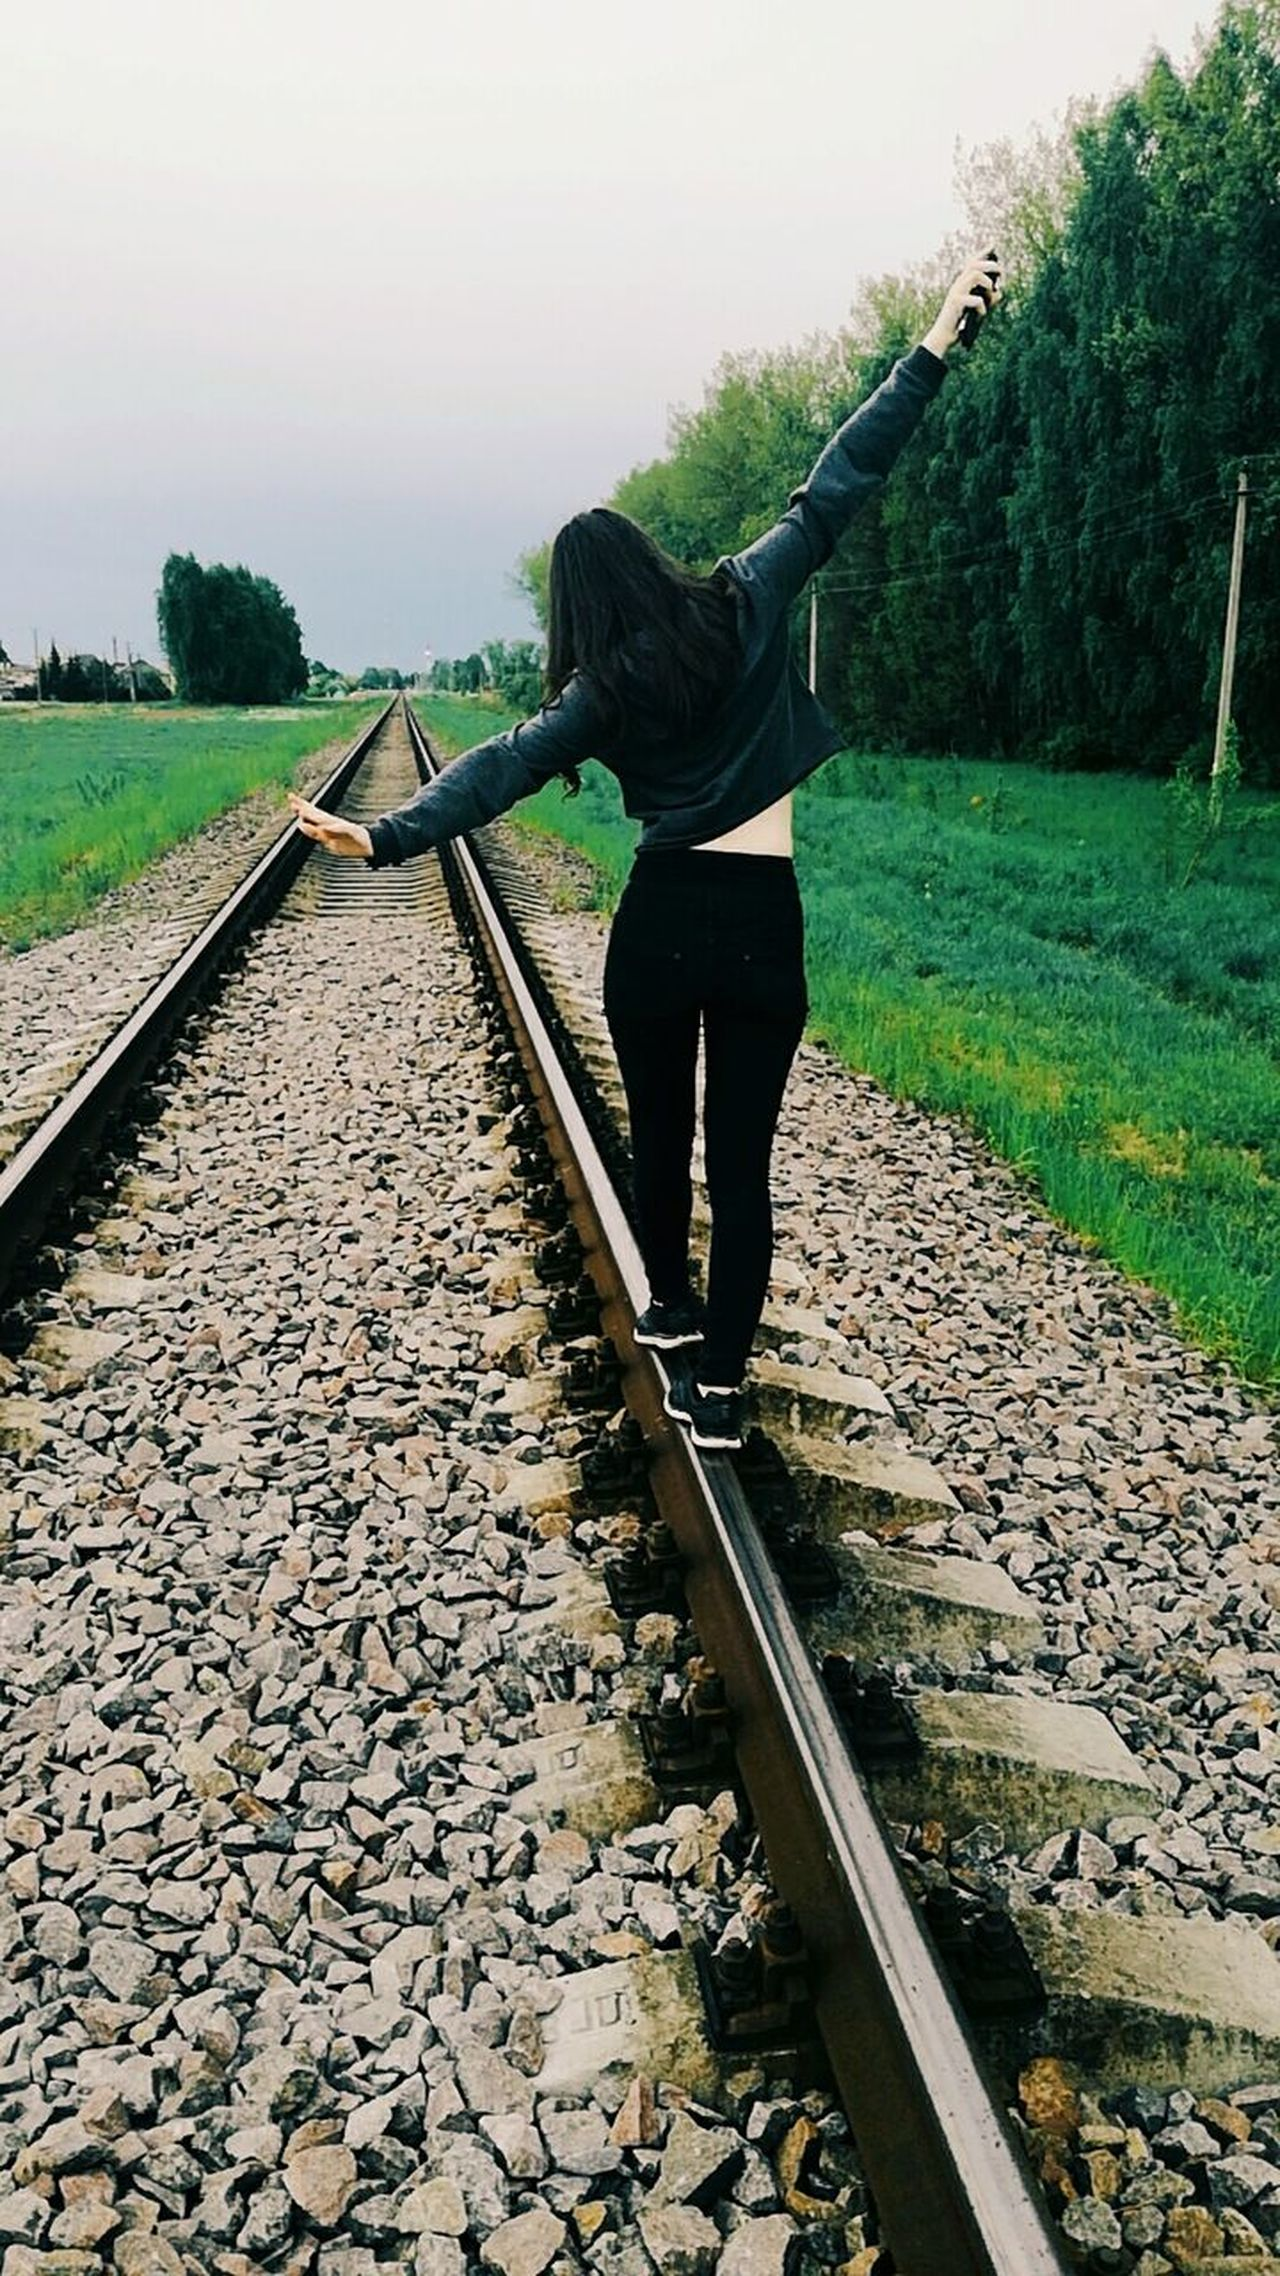 One Person Full Length Adult People Only Women Railroad Track Adults Only Human Body Part Day Outdoors Water Tree One Woman Only Working Women Sky Nature Young Adult Bff❤